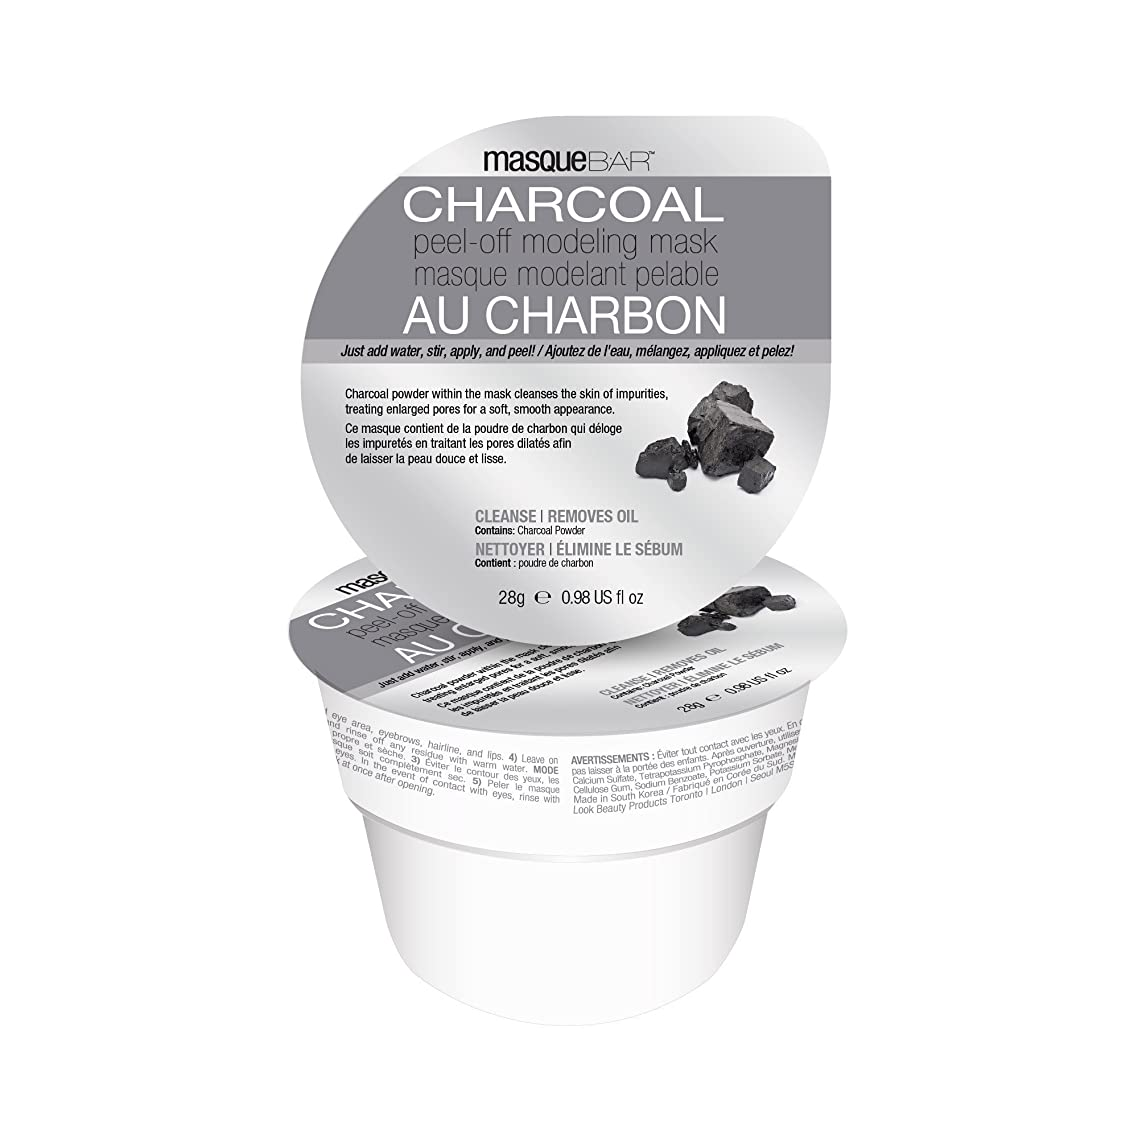 Masque Bar Charcoal Peel-Off Modeling Mask - For Acne, Blemishes, Oily Skin, Blackheads, Facial Pore Refiner - Made in Korea